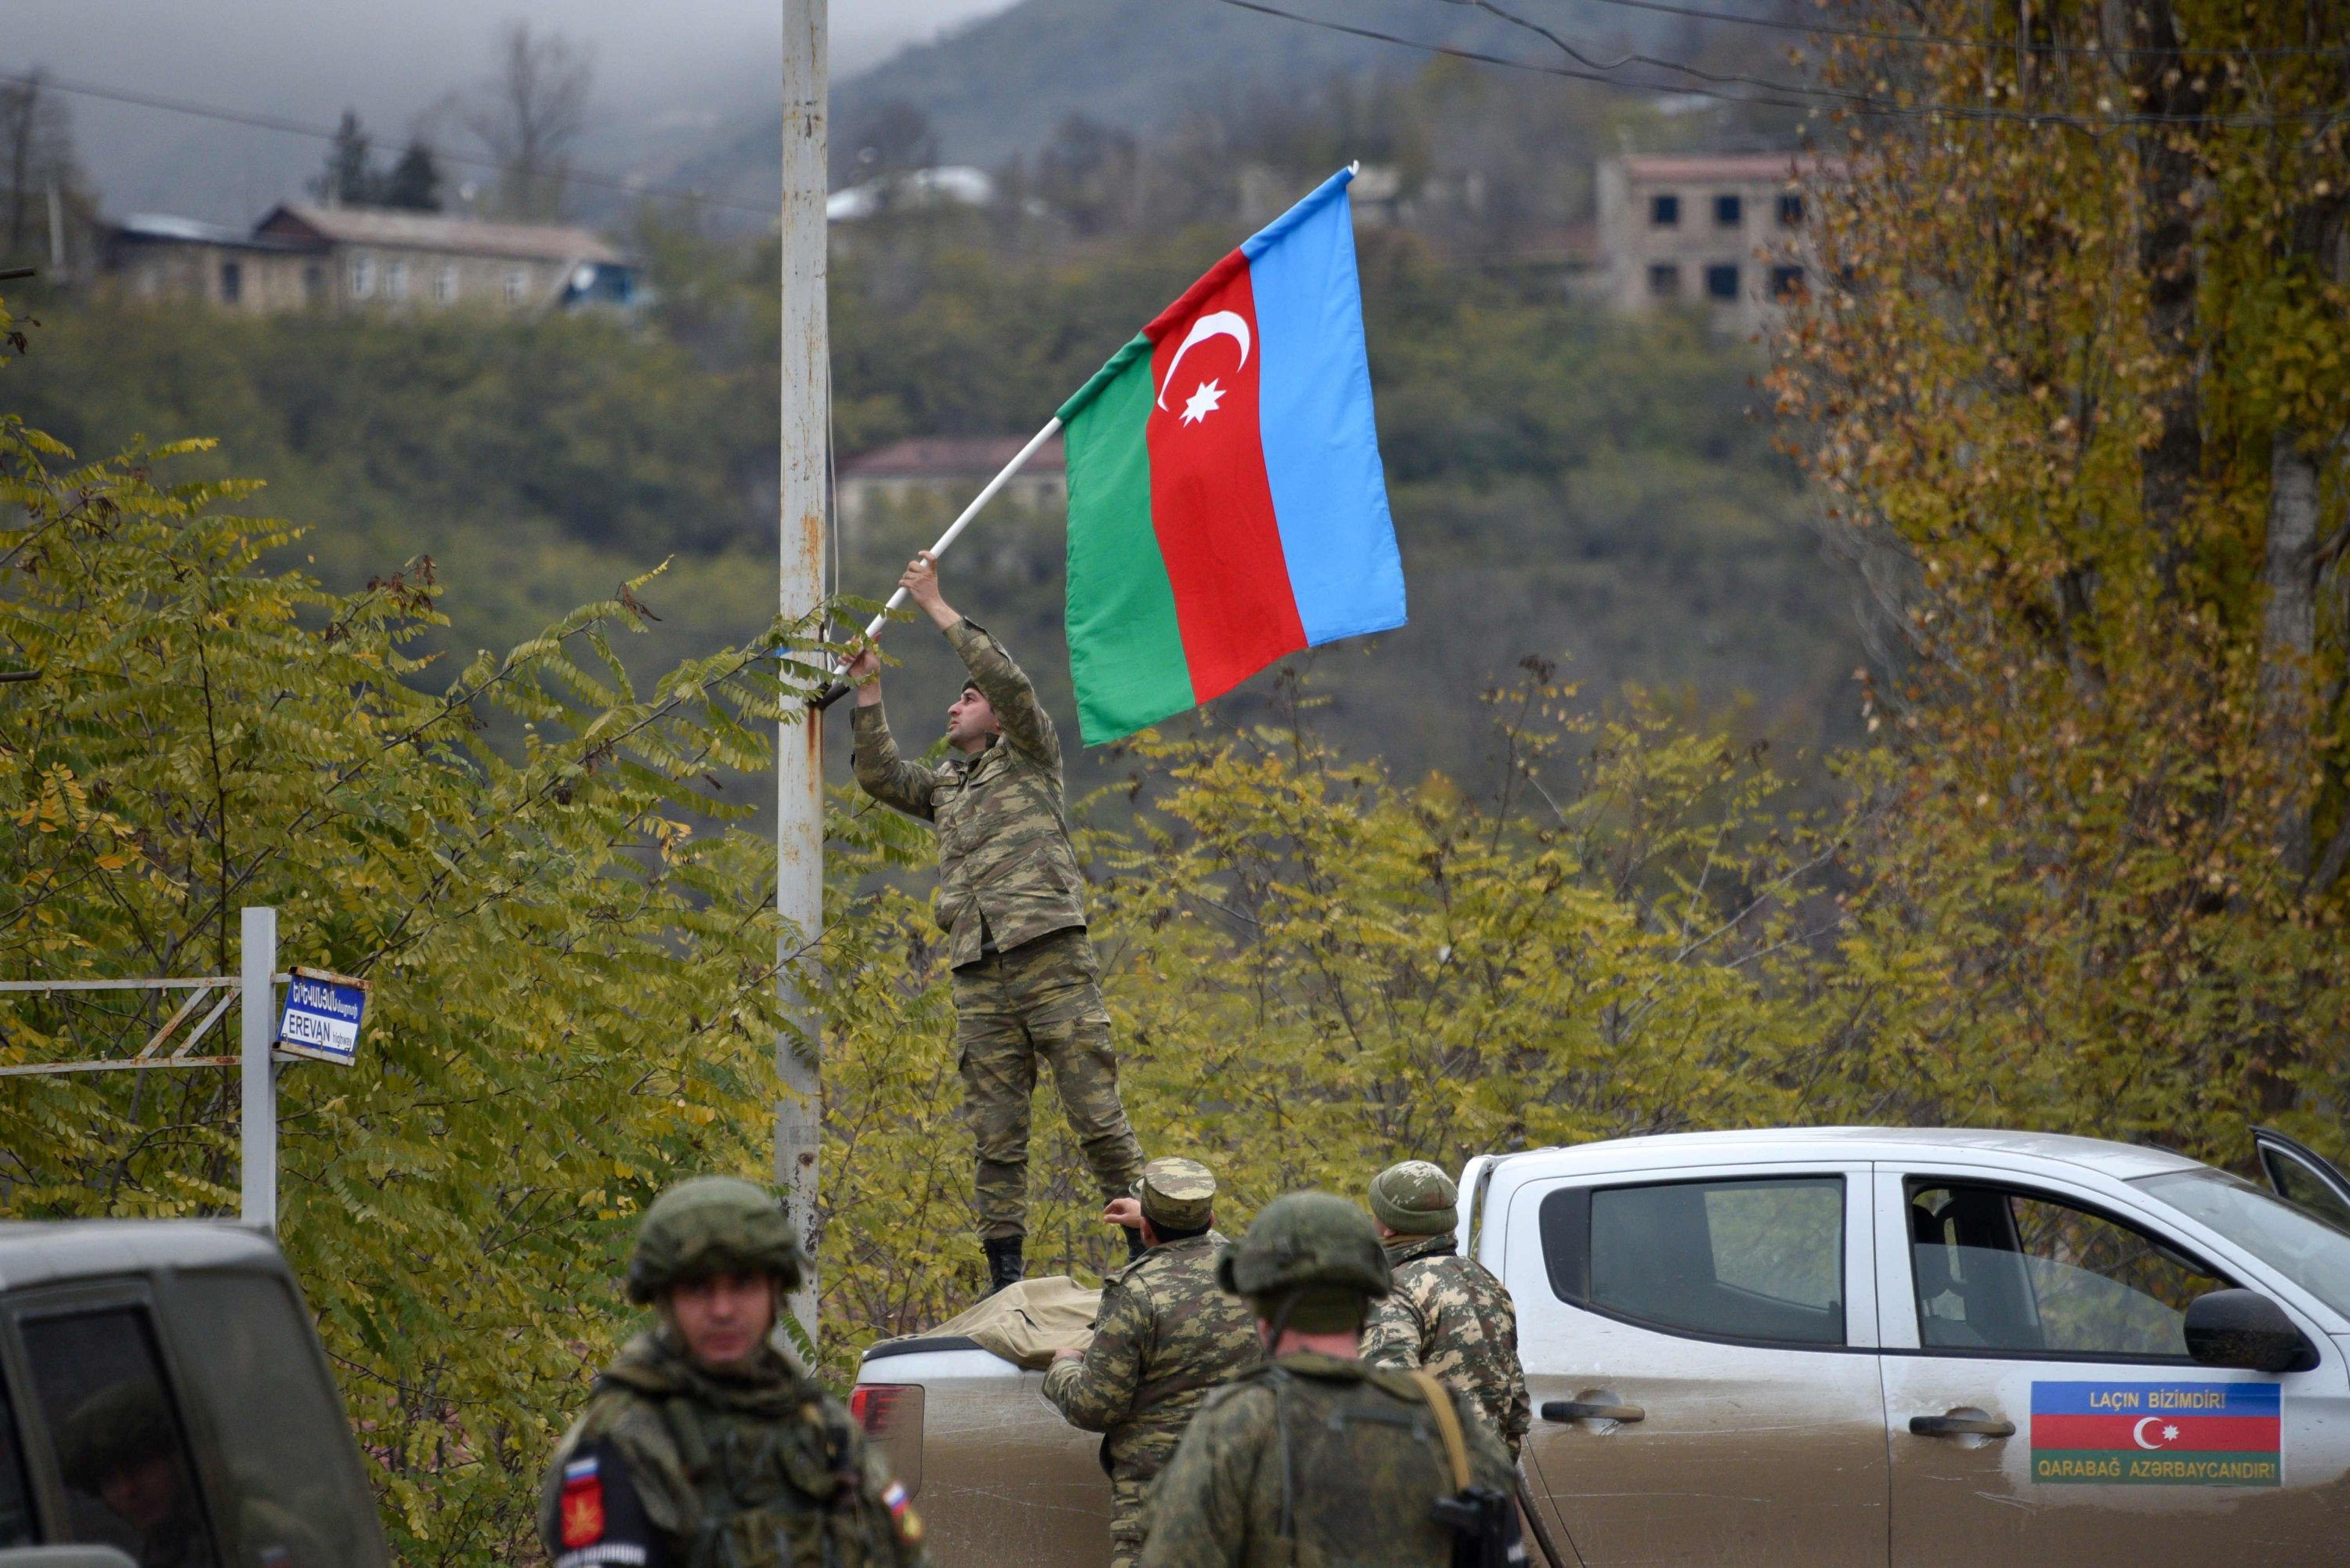 An Azerbaijani soldier fixes a national flag on a lamp post in the town of Lachin, Azerbaijan, Dec. 1, 2020. (Photo by Karen MINASYAN via AFP)